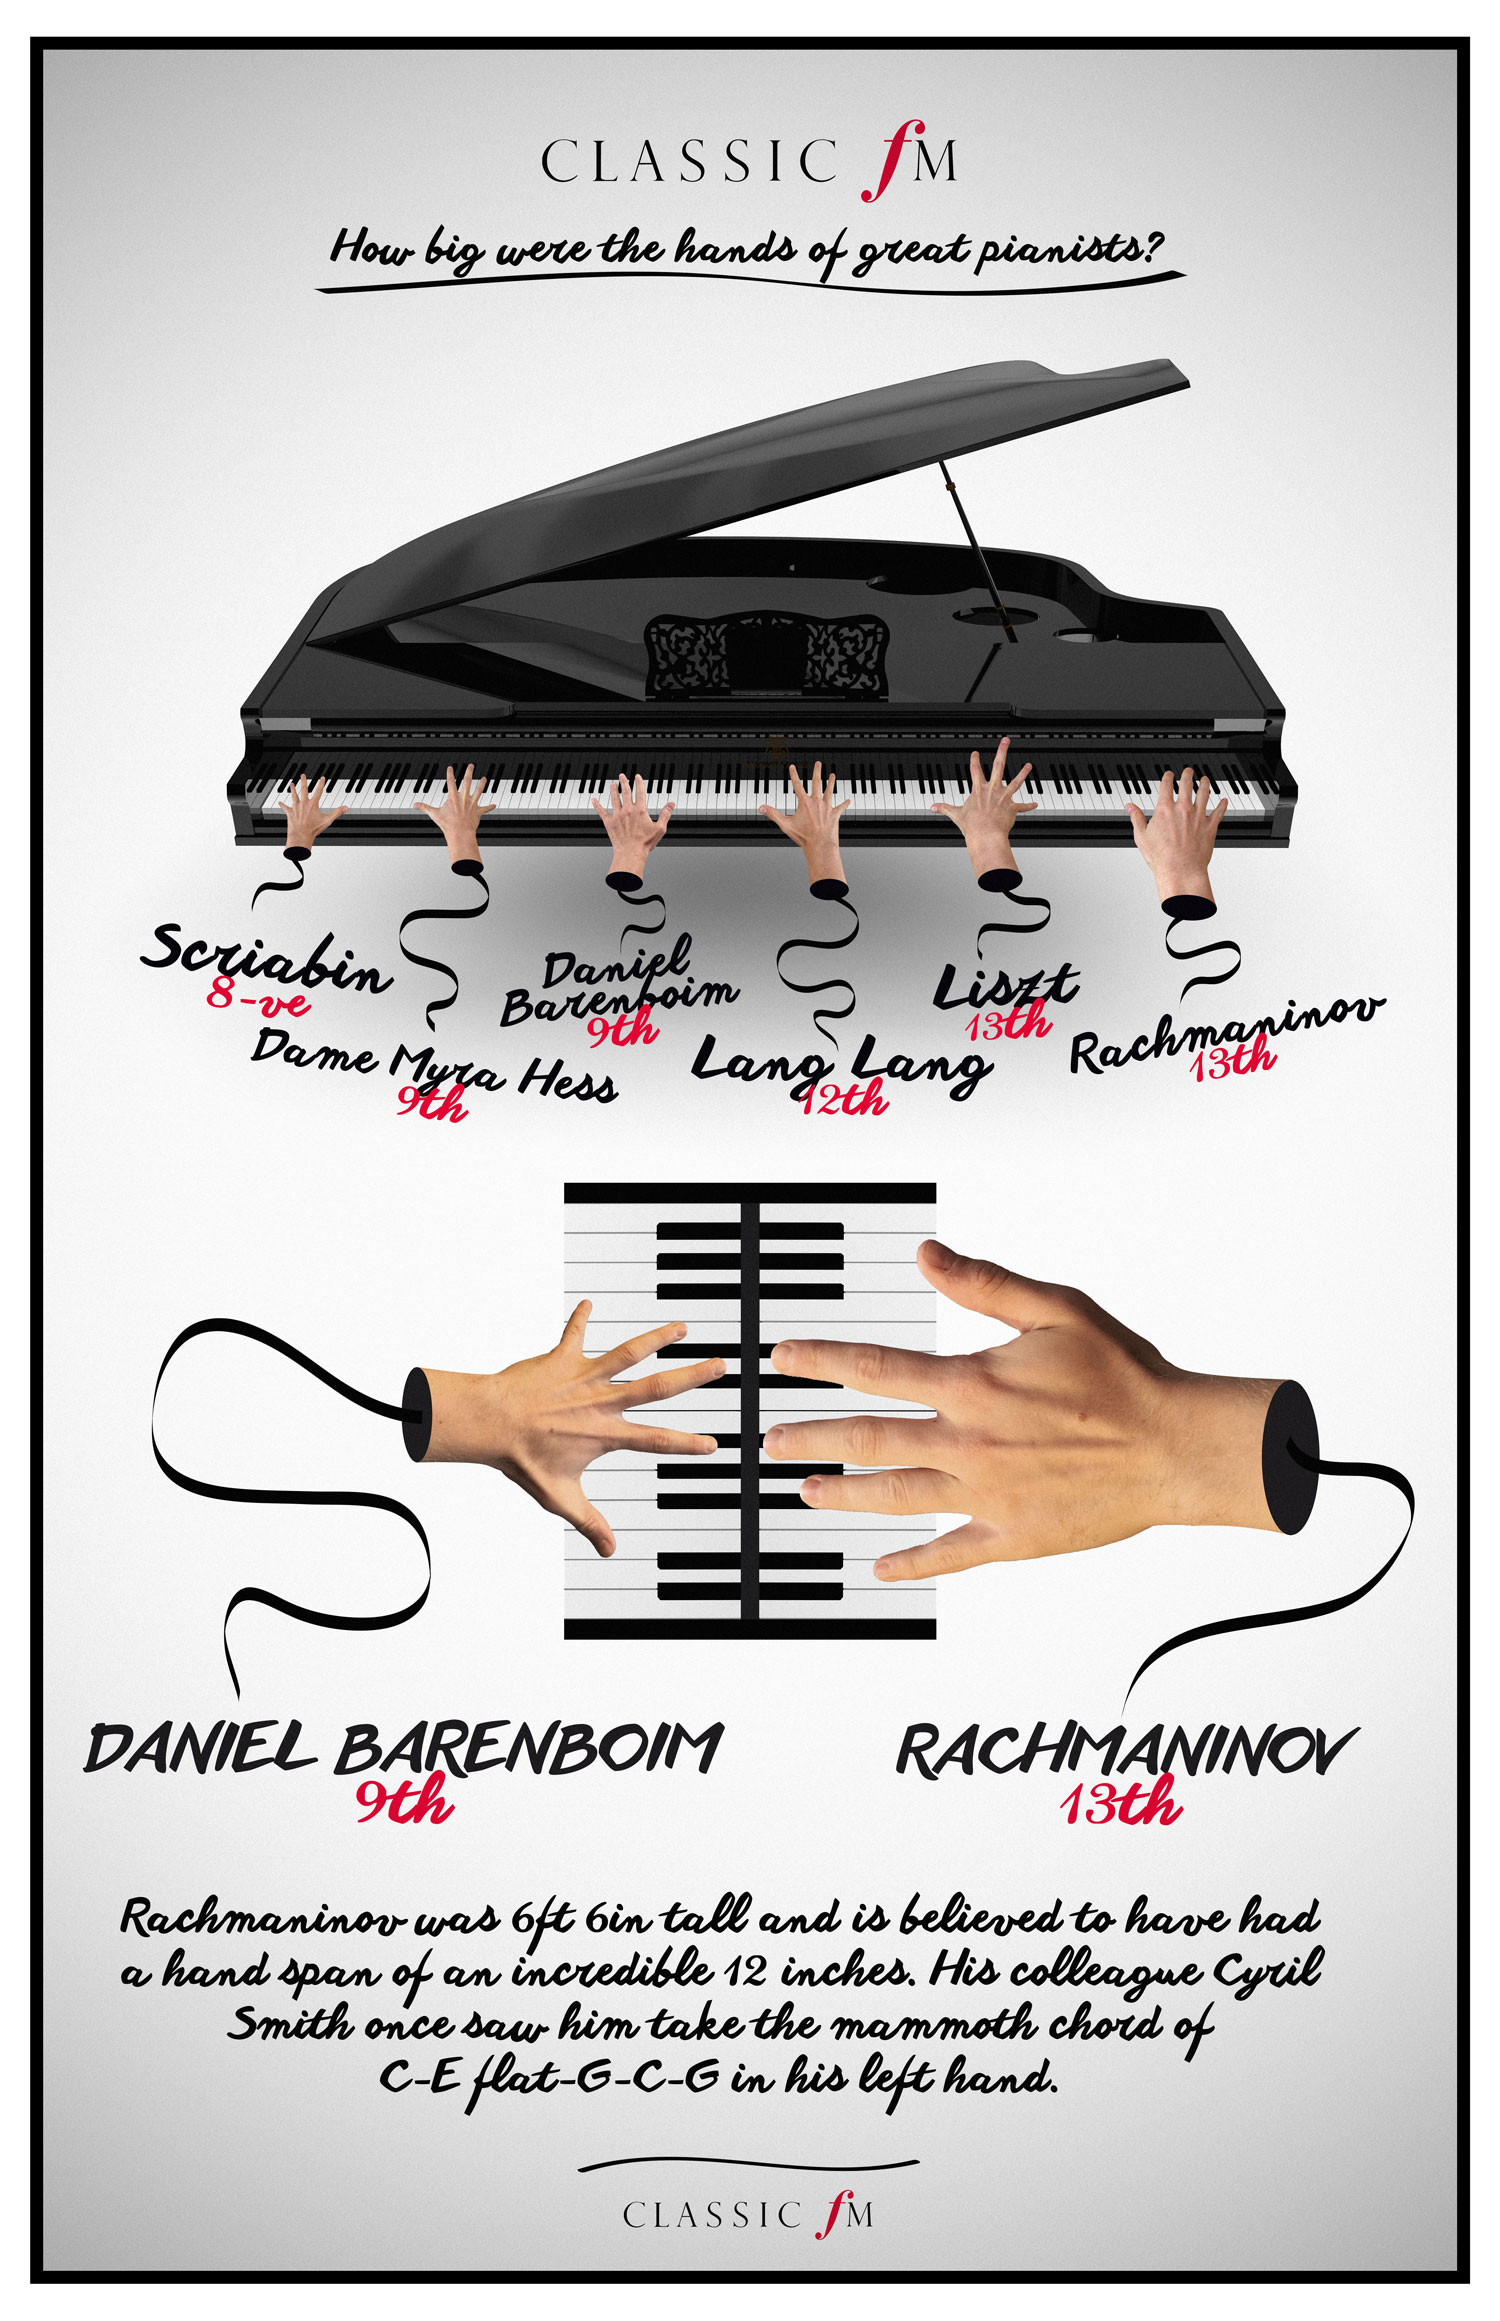 [Image: pianist-hand-span-infographic-1414410936.jpeg]